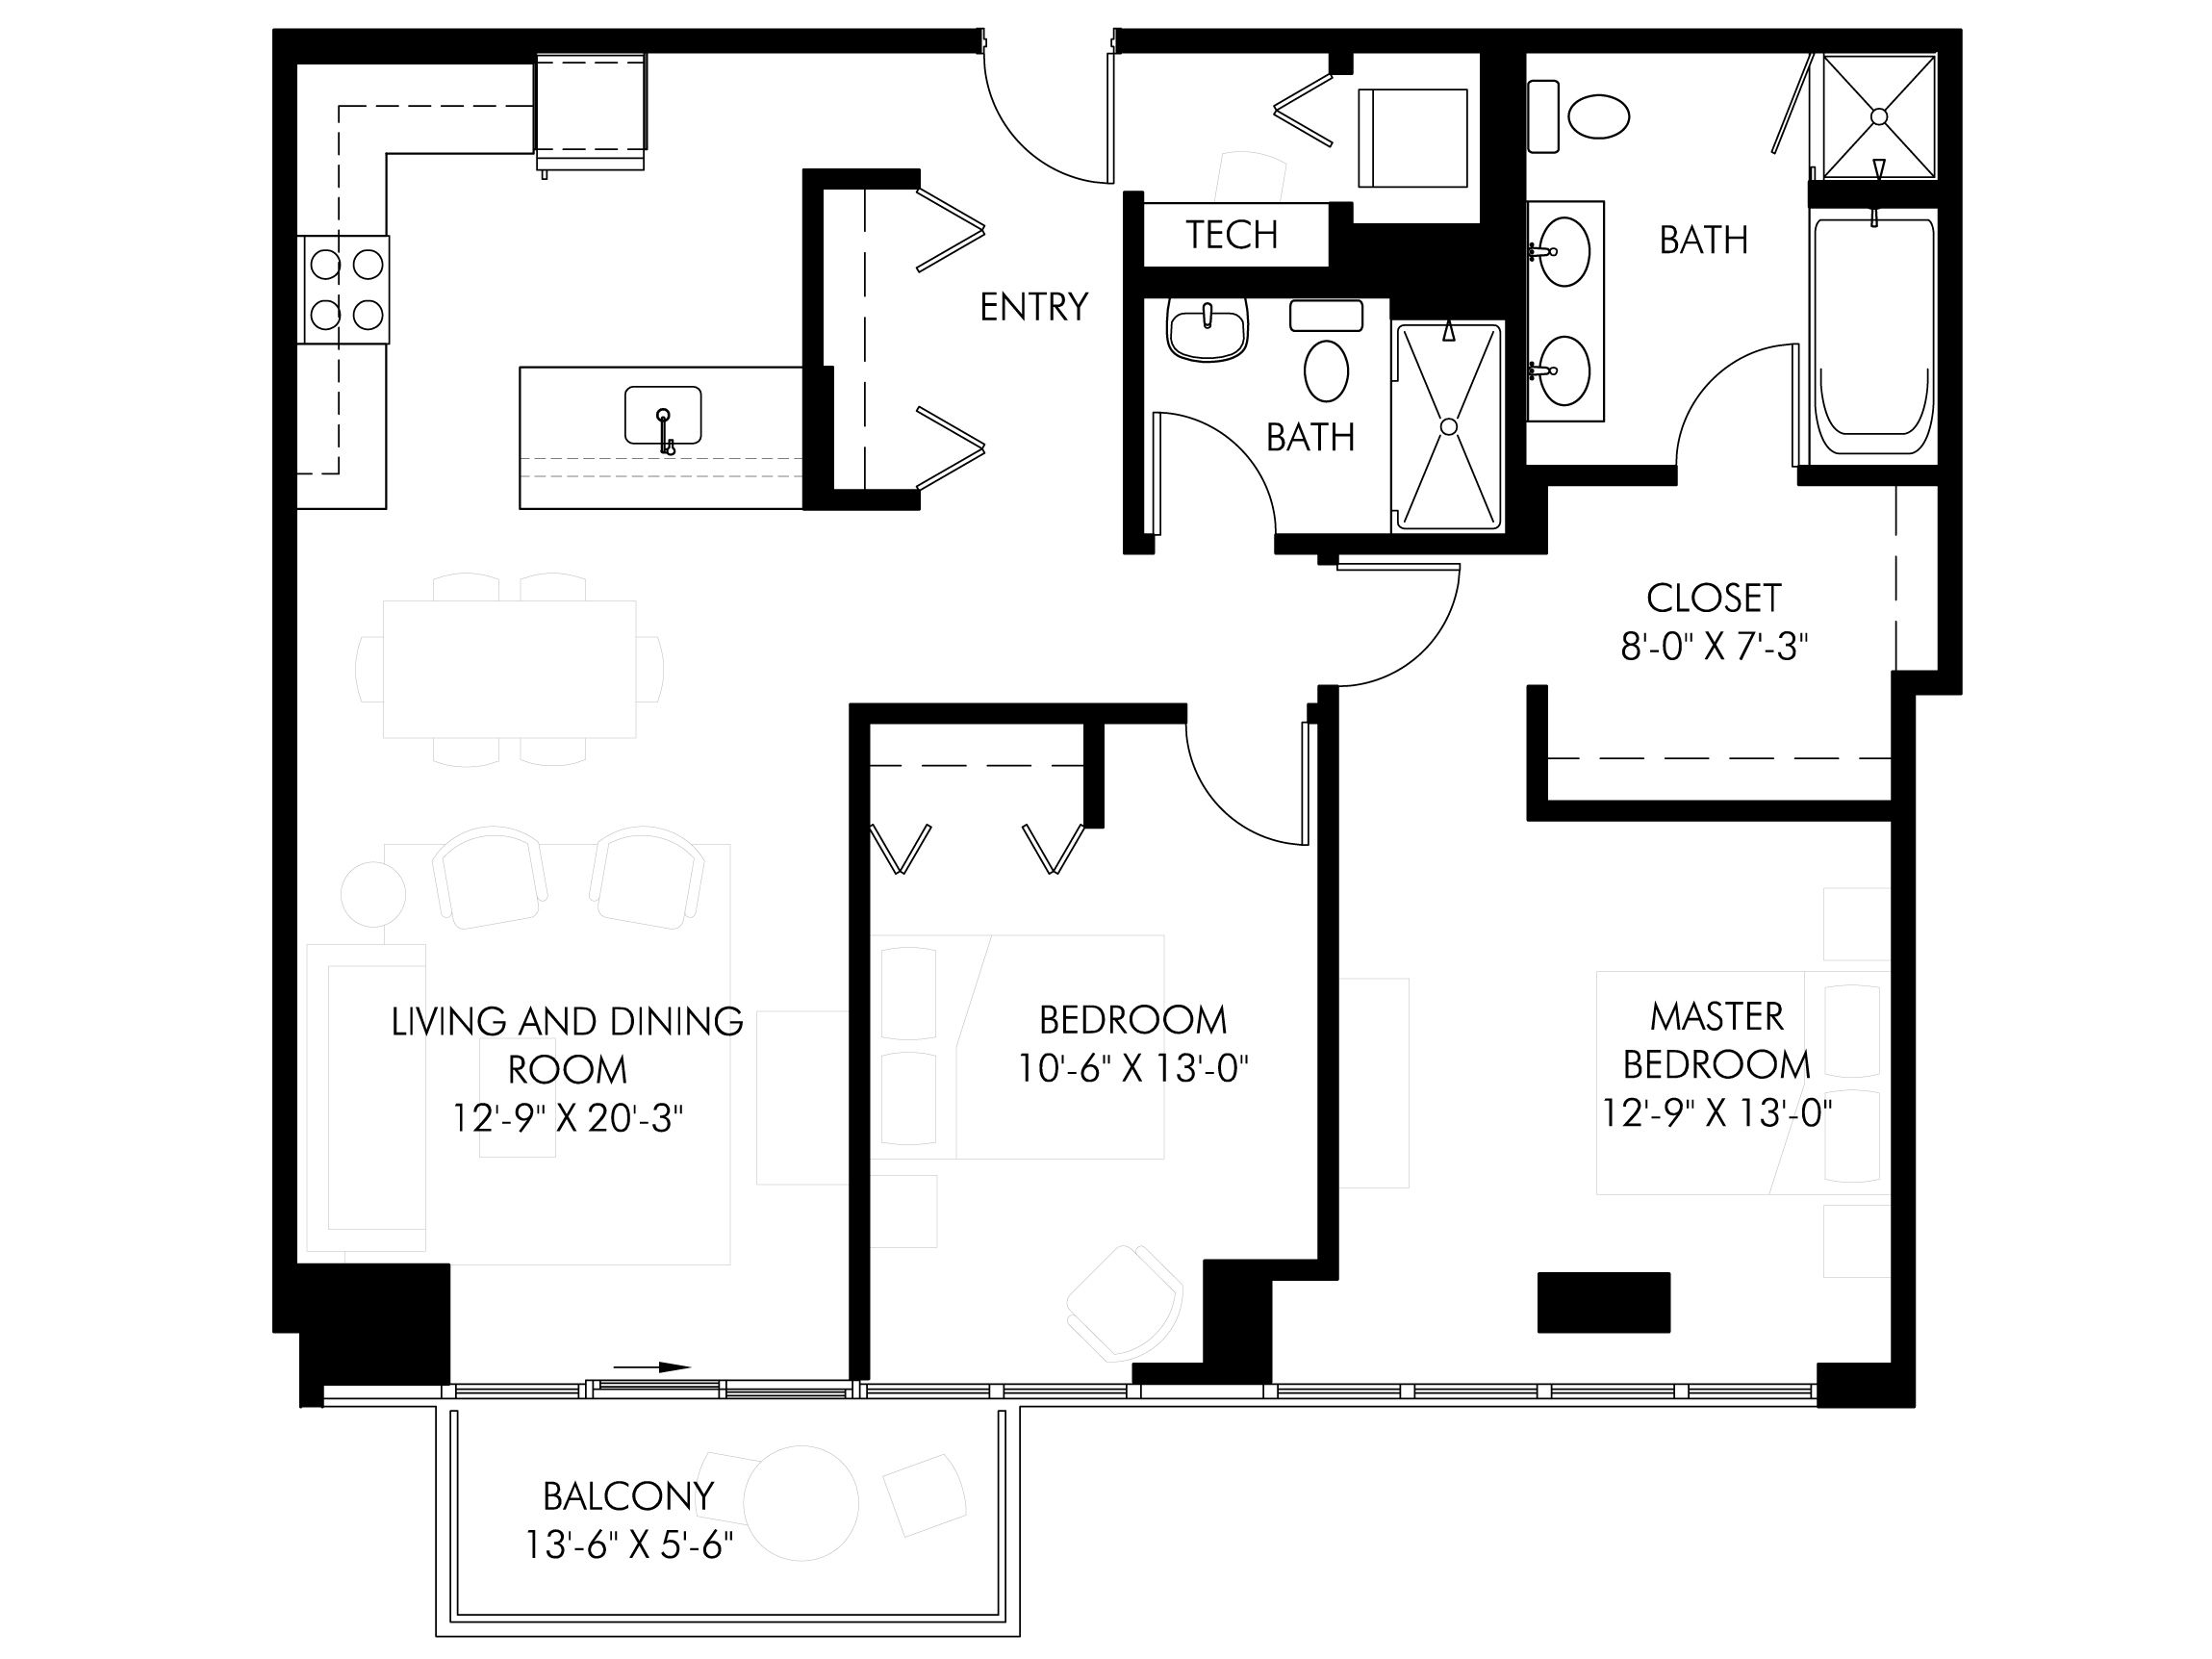 1000 Square Foot Floor Plans Unit 1216 1200 Square Feet Price 341000 Or 284 Per Square Foot Condo Floor Plans Floor Plans Apartment Floor Plans